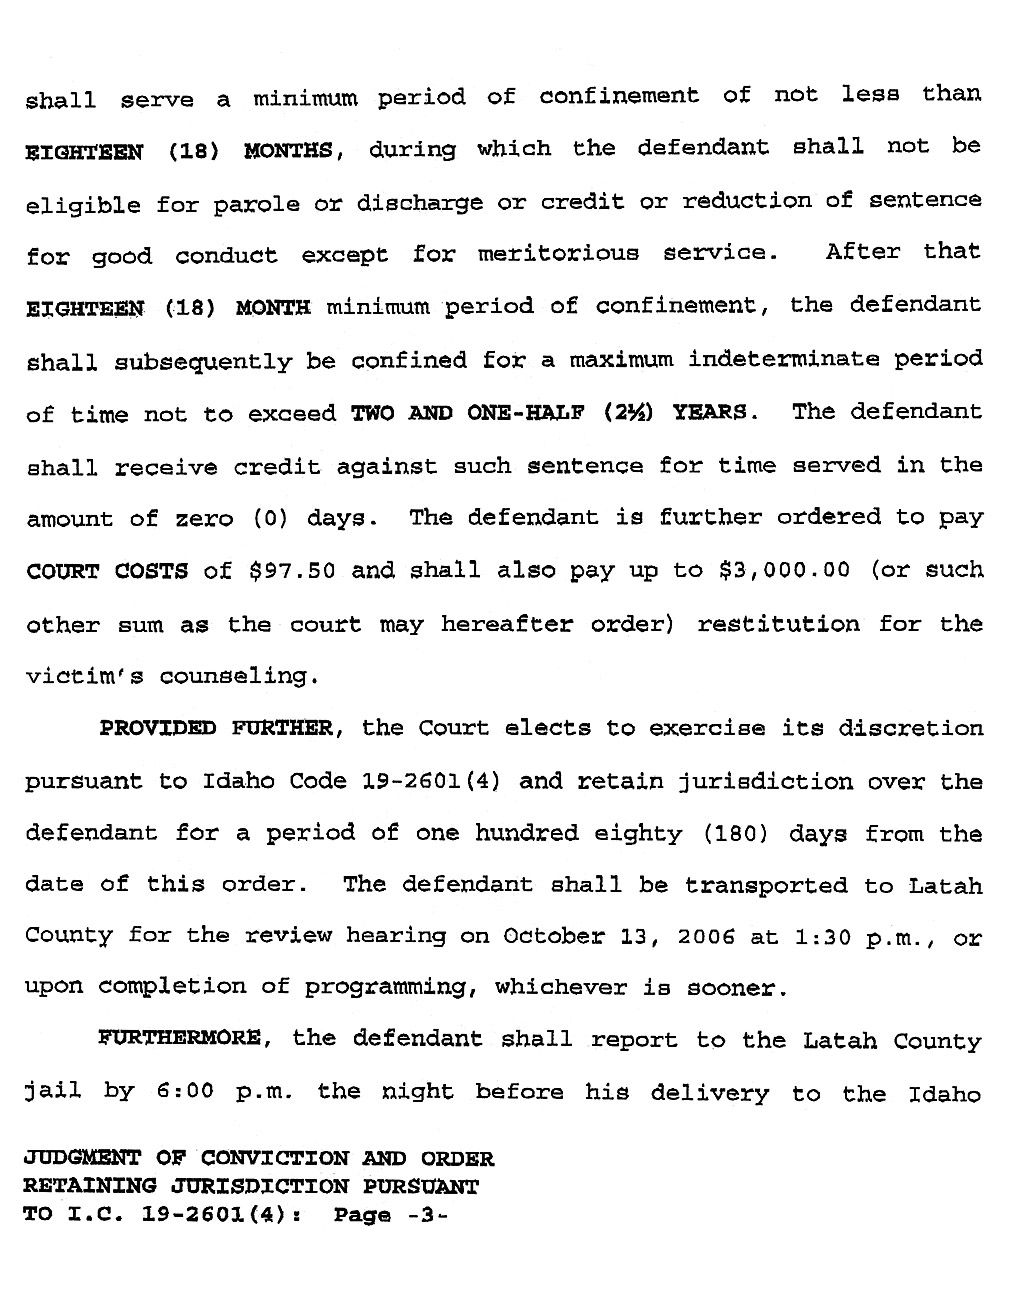 Jamin Wight: Judgment of Conviction and Order Retaining Jurisdiction page 3